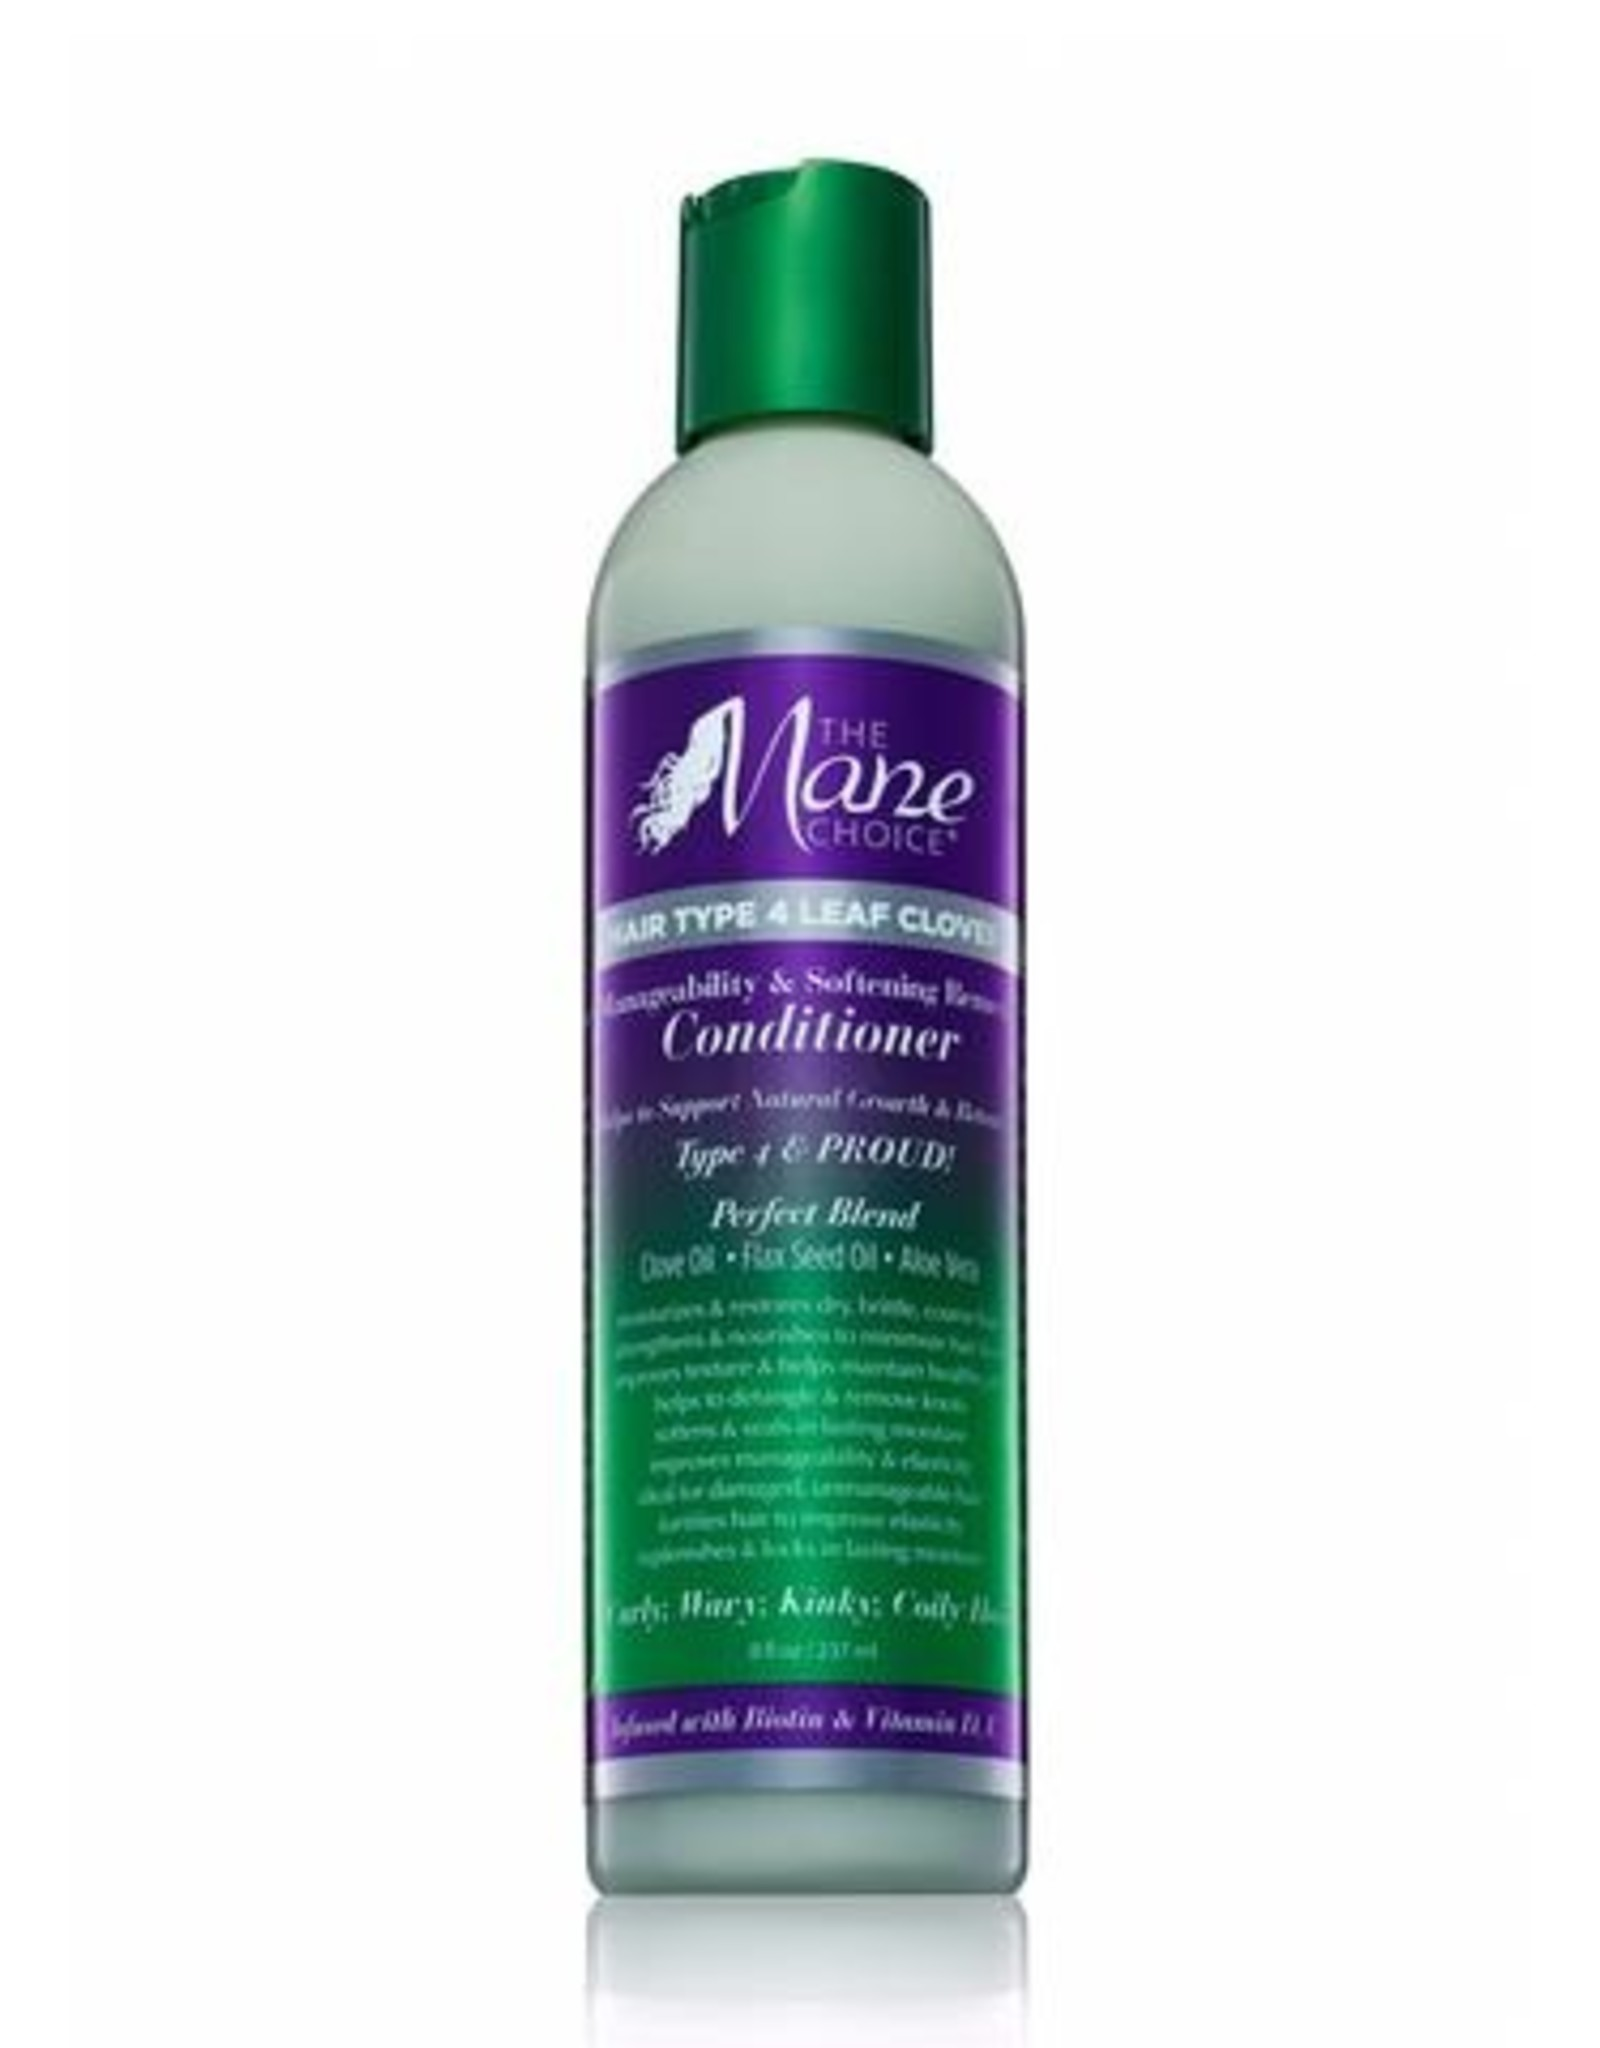 THE MANE CHOICE THE MANE CHOICE MANAGEABILITY & SOFTENING REMEDY CONDITIONER 8fl oz